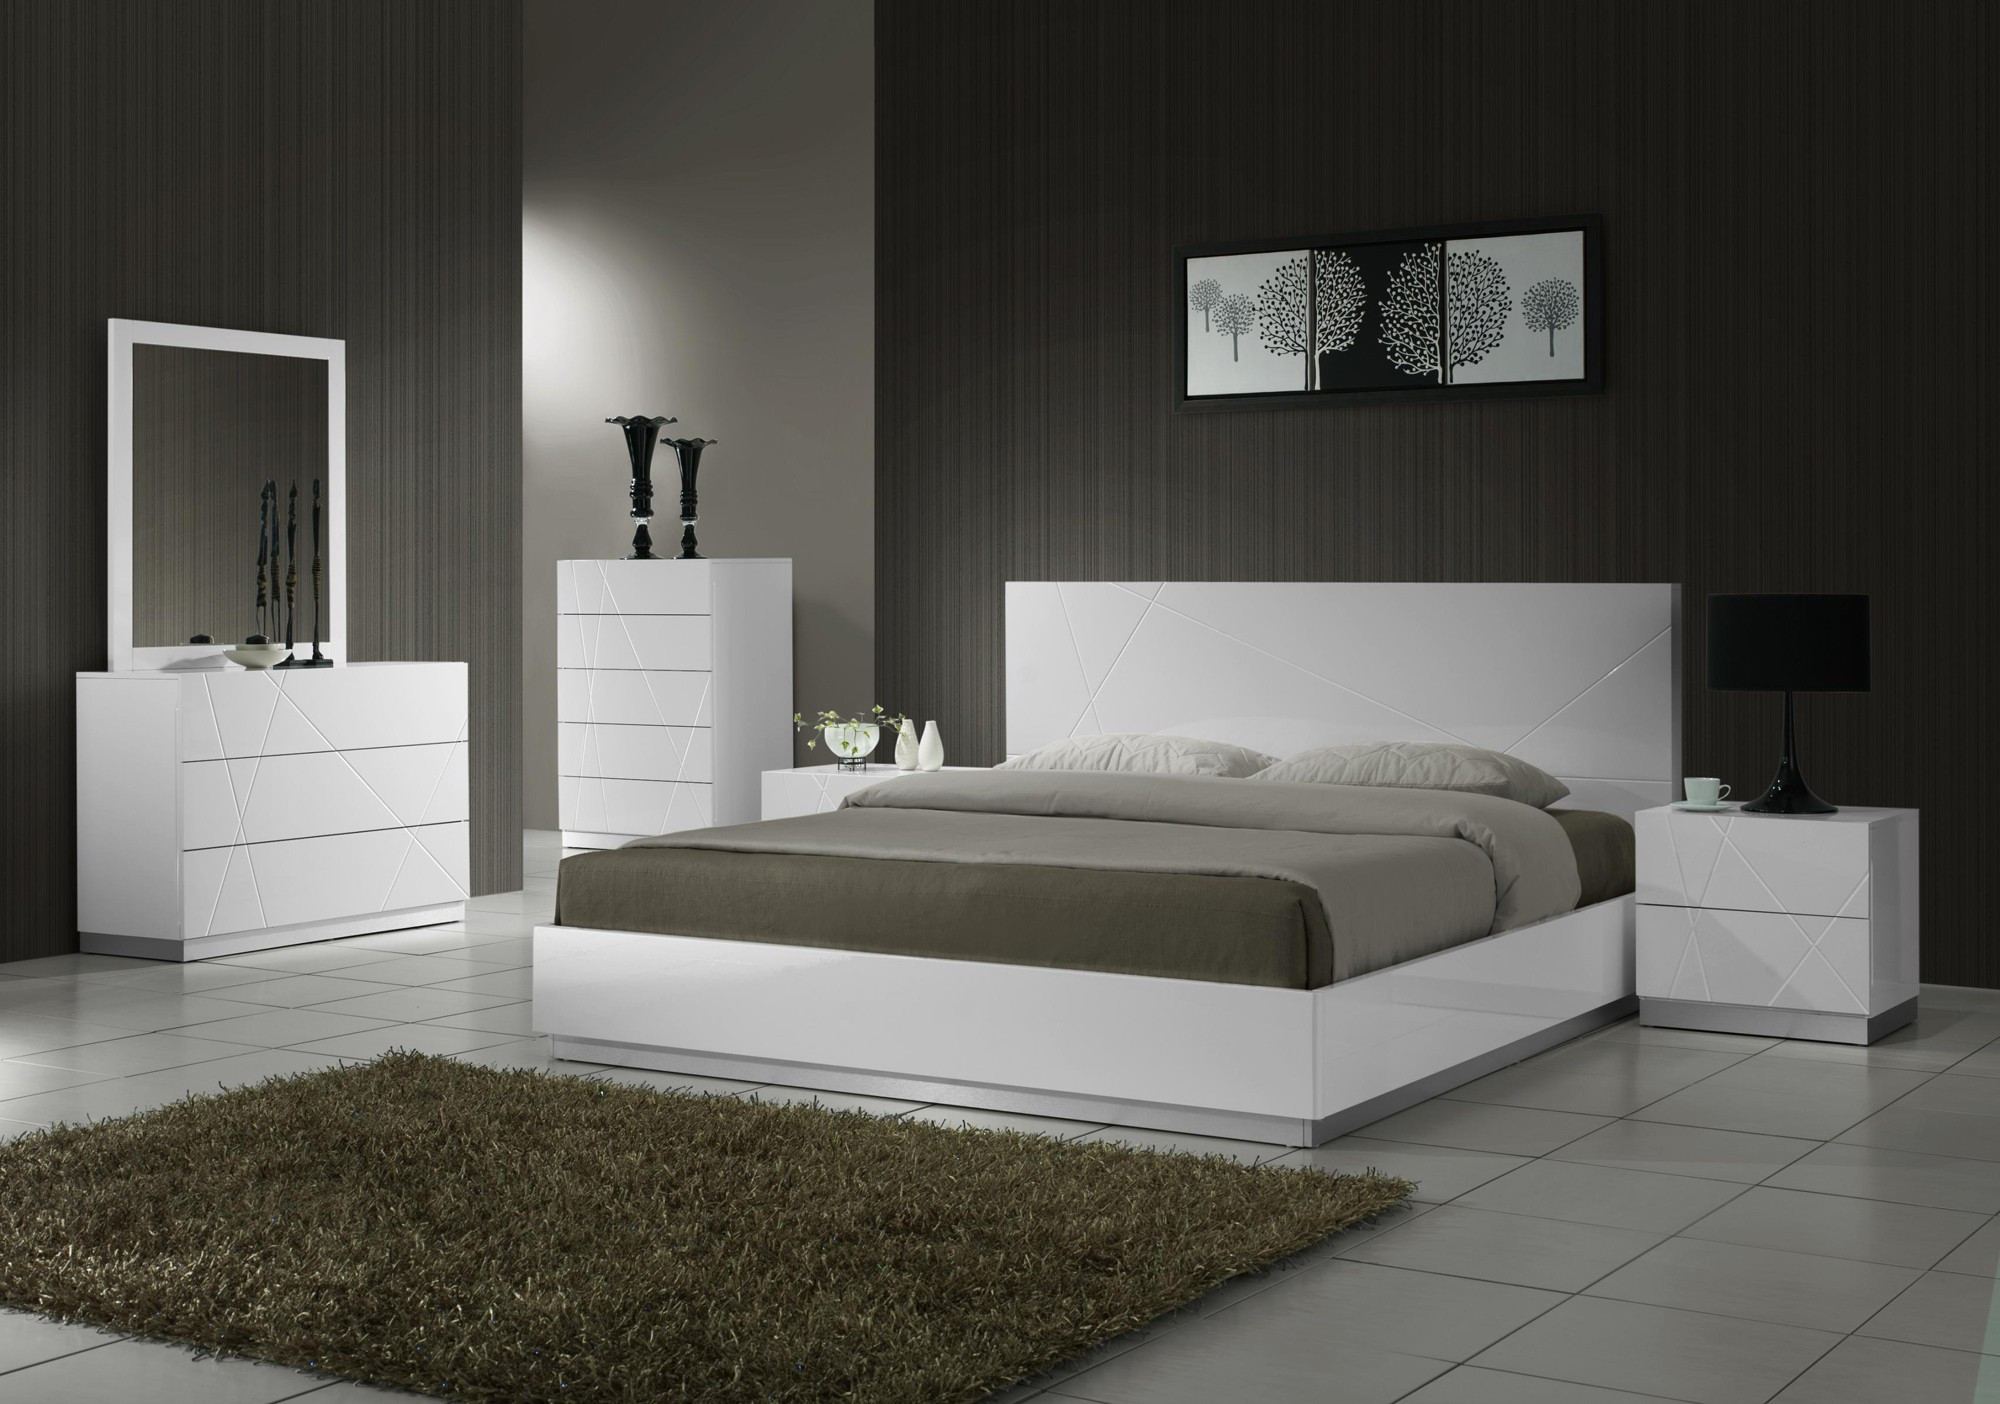 Best ideas about Modern Bedroom Furniture . Save or Pin NAPLES Modern Bedroom Set Now.